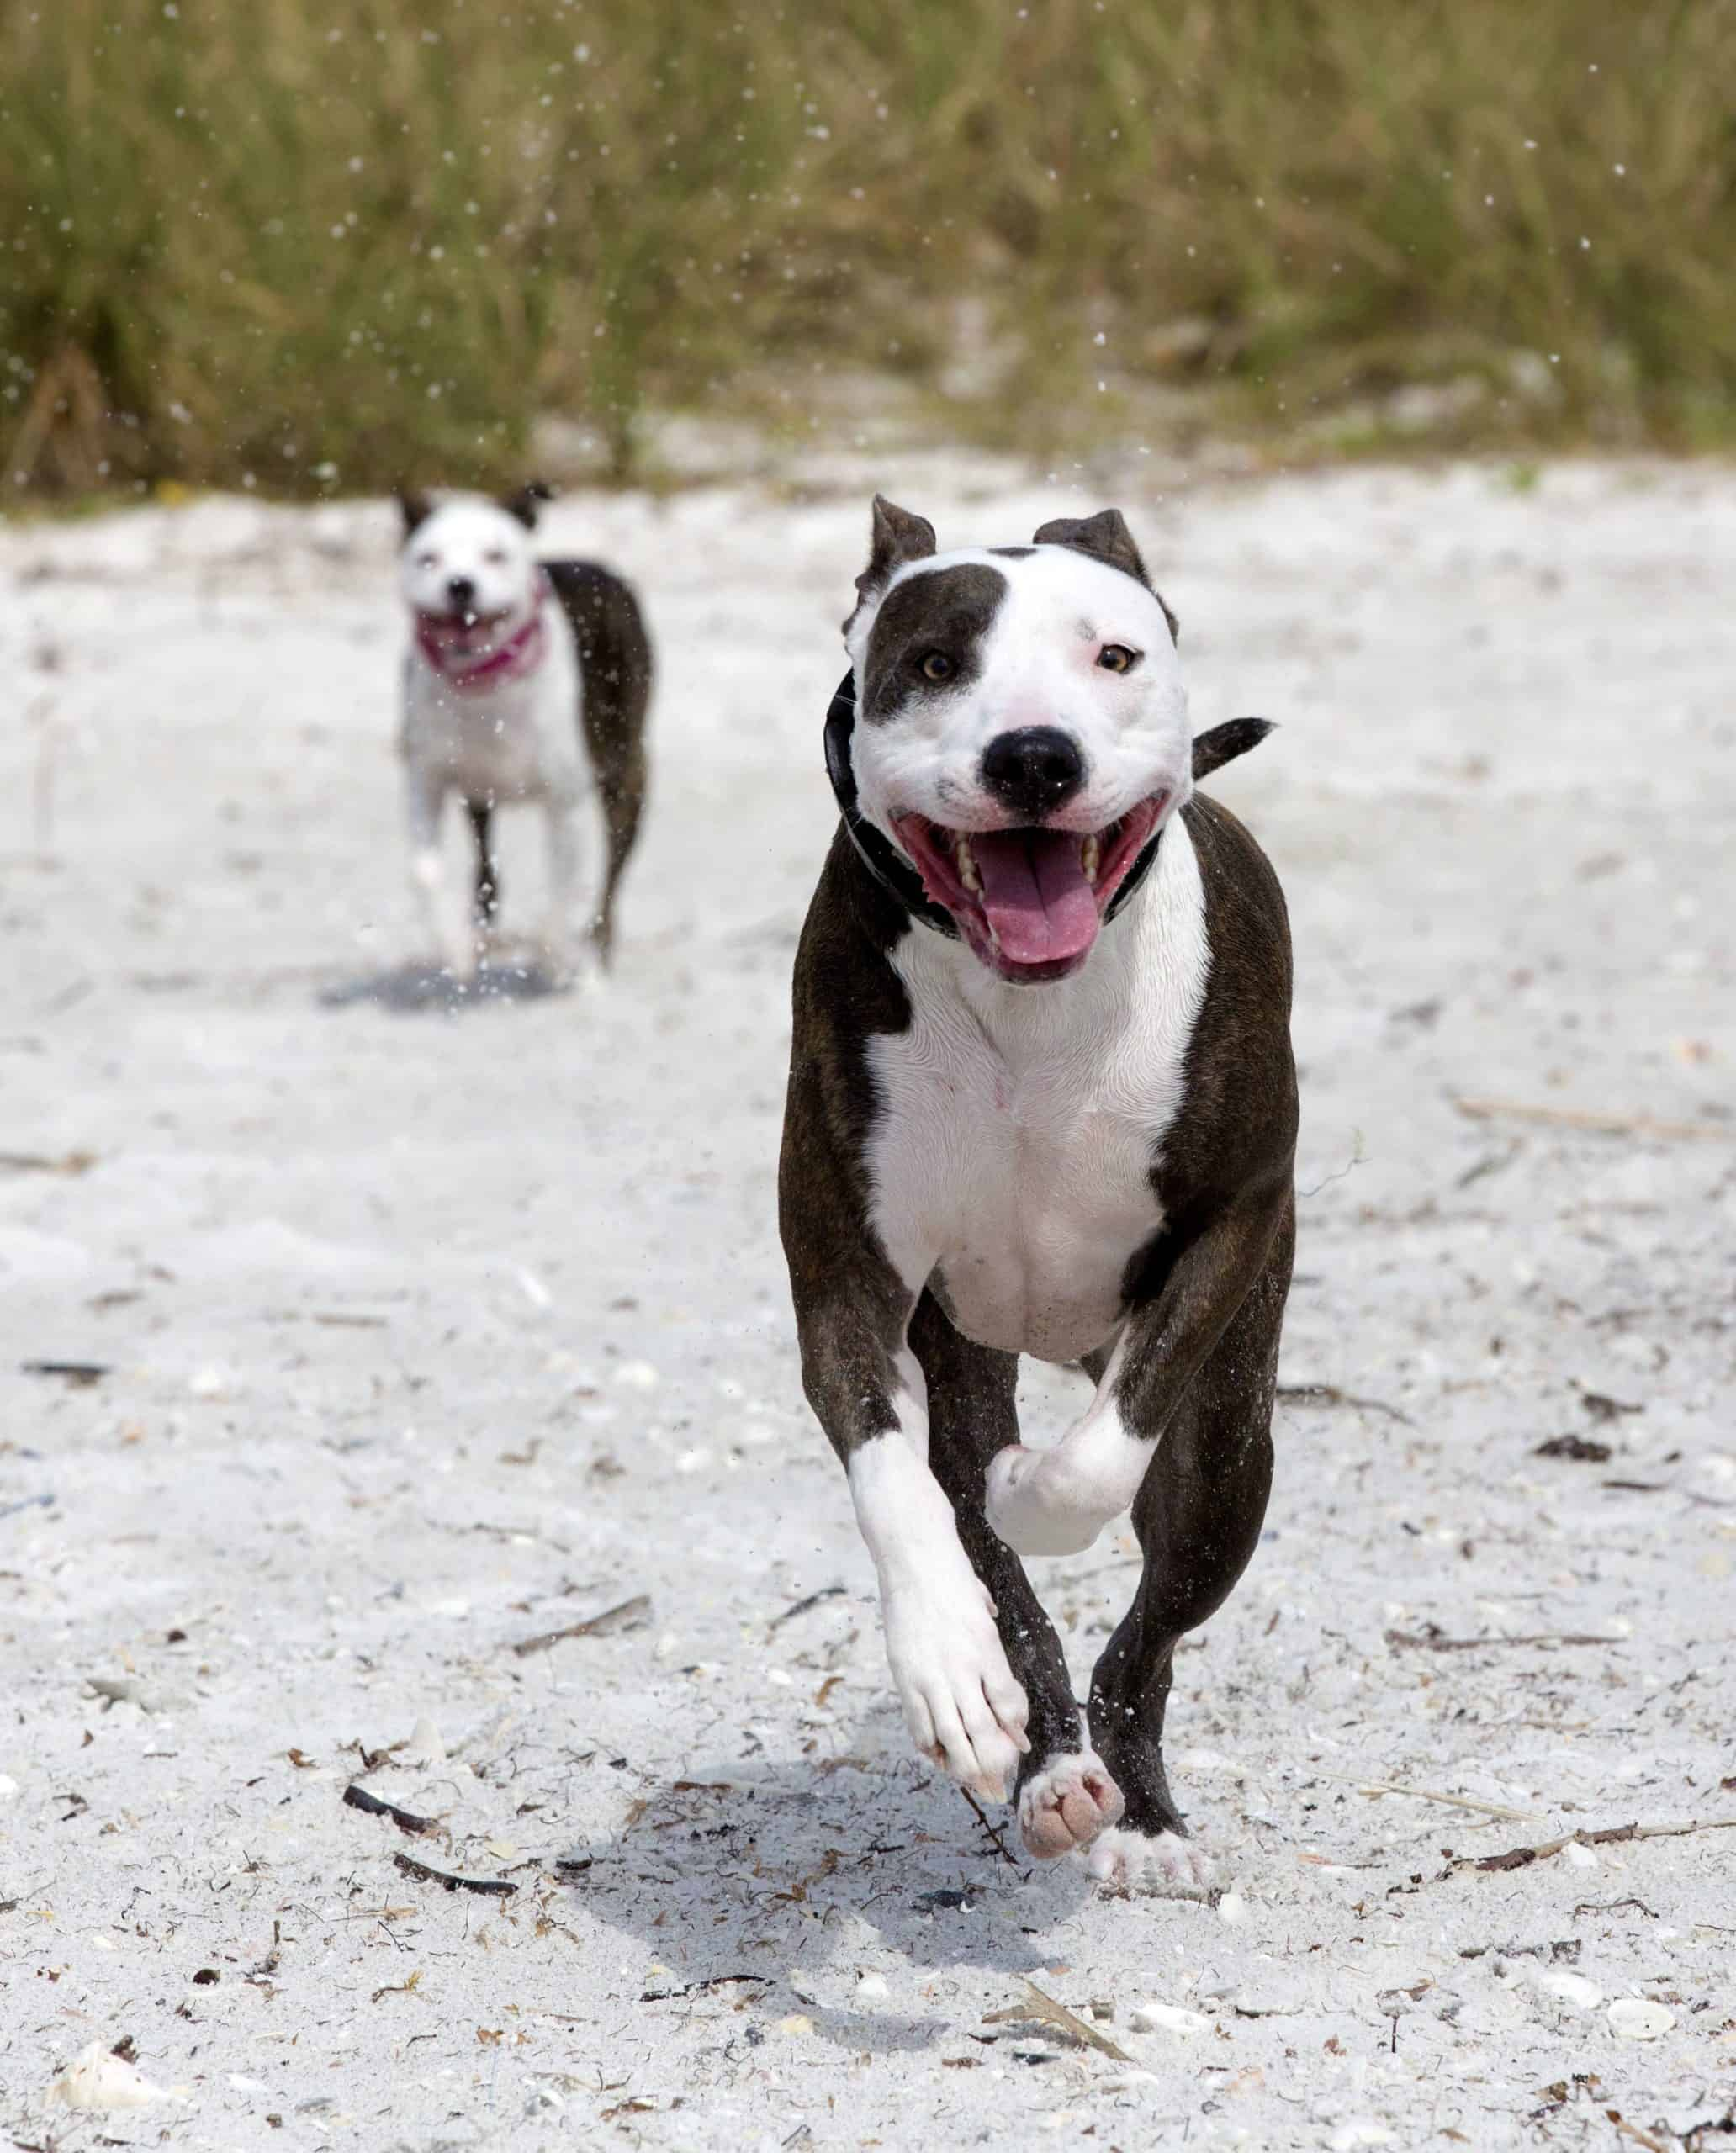 A Great Danebull, a Great Dane-pit bull mix, runs on the beach. The Great Danebull is an active breed that requires daily exercise. They are big, lovable, loyal, and protective.